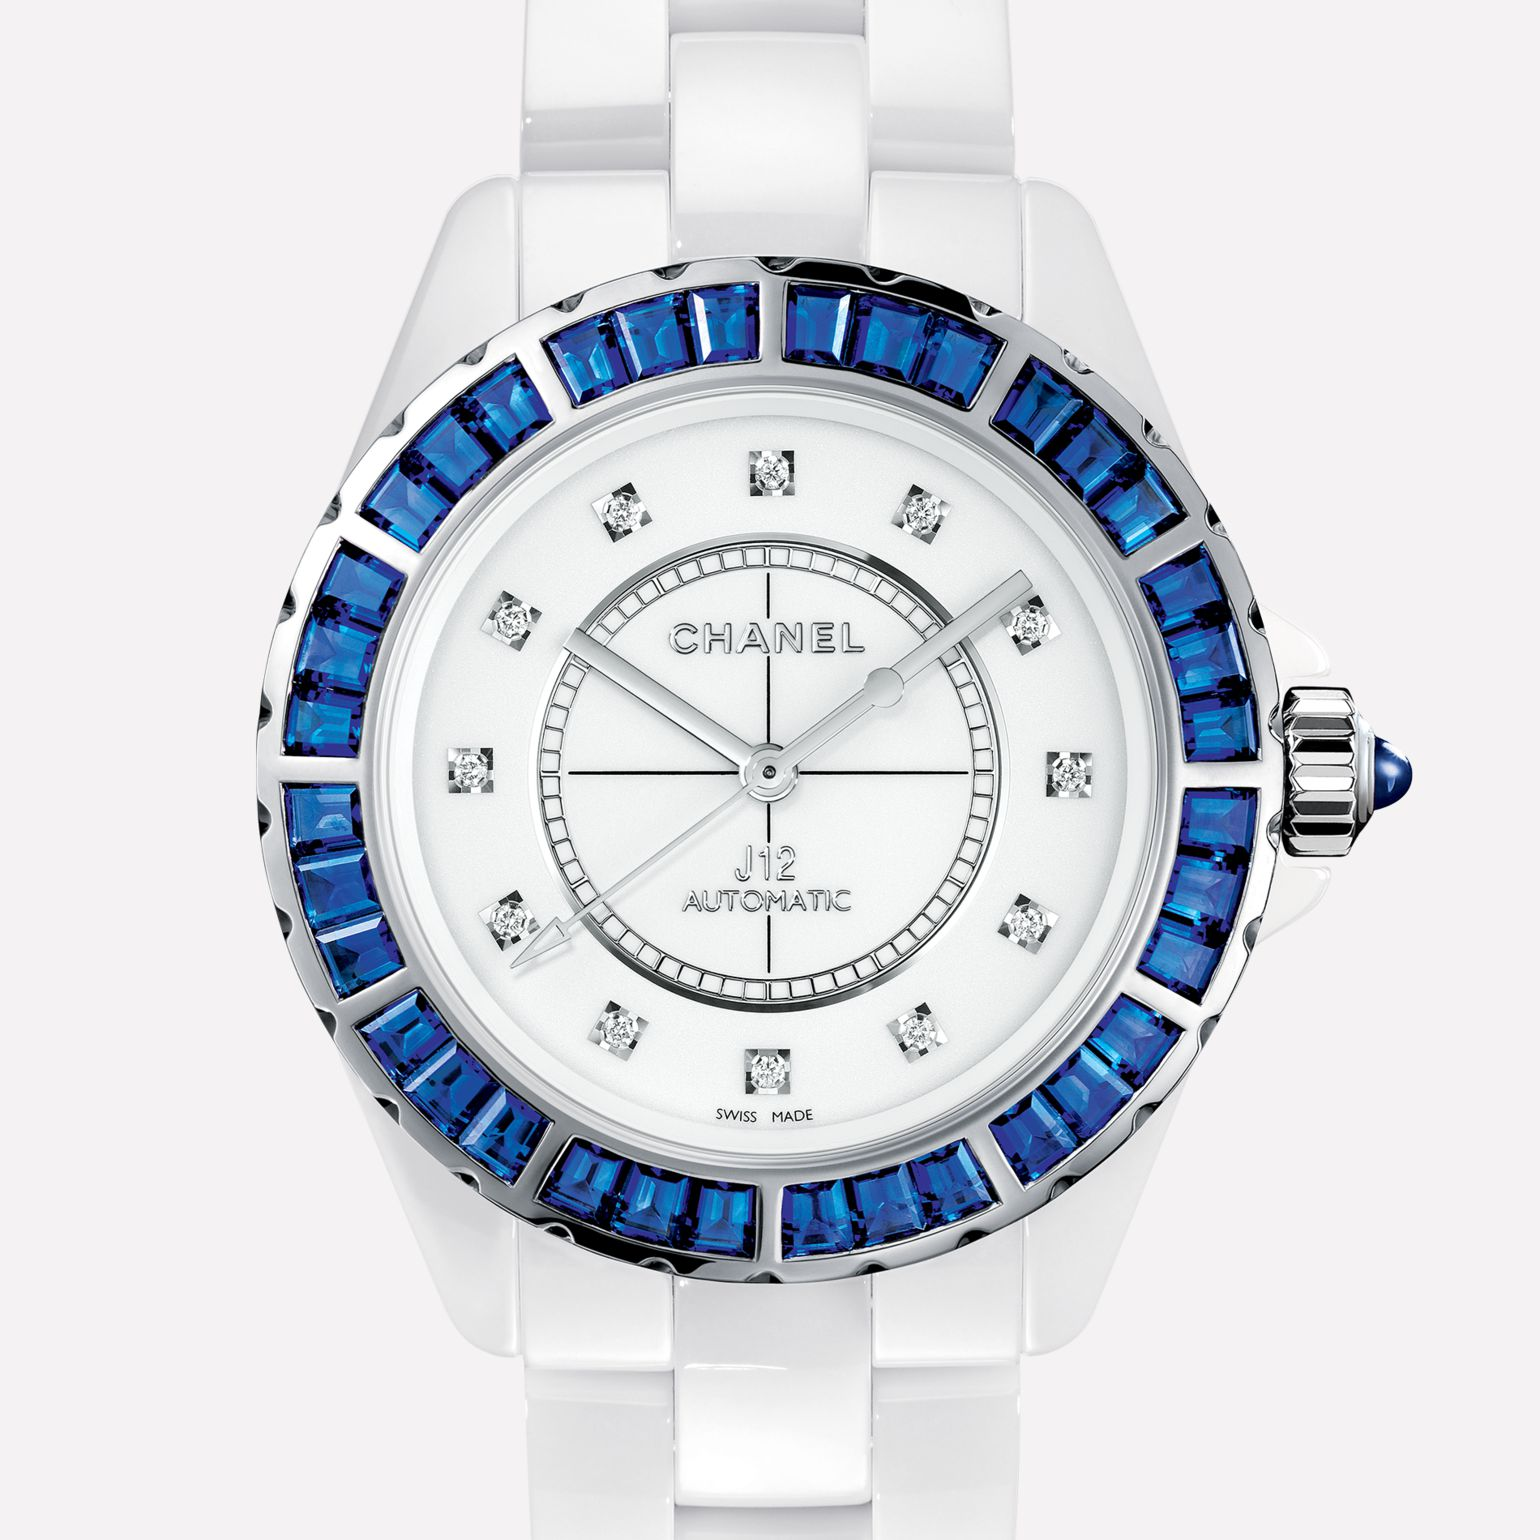 J12 Jewelry Watch White ceramic and white gold, bezel set with blue sapphires, diamond indicators